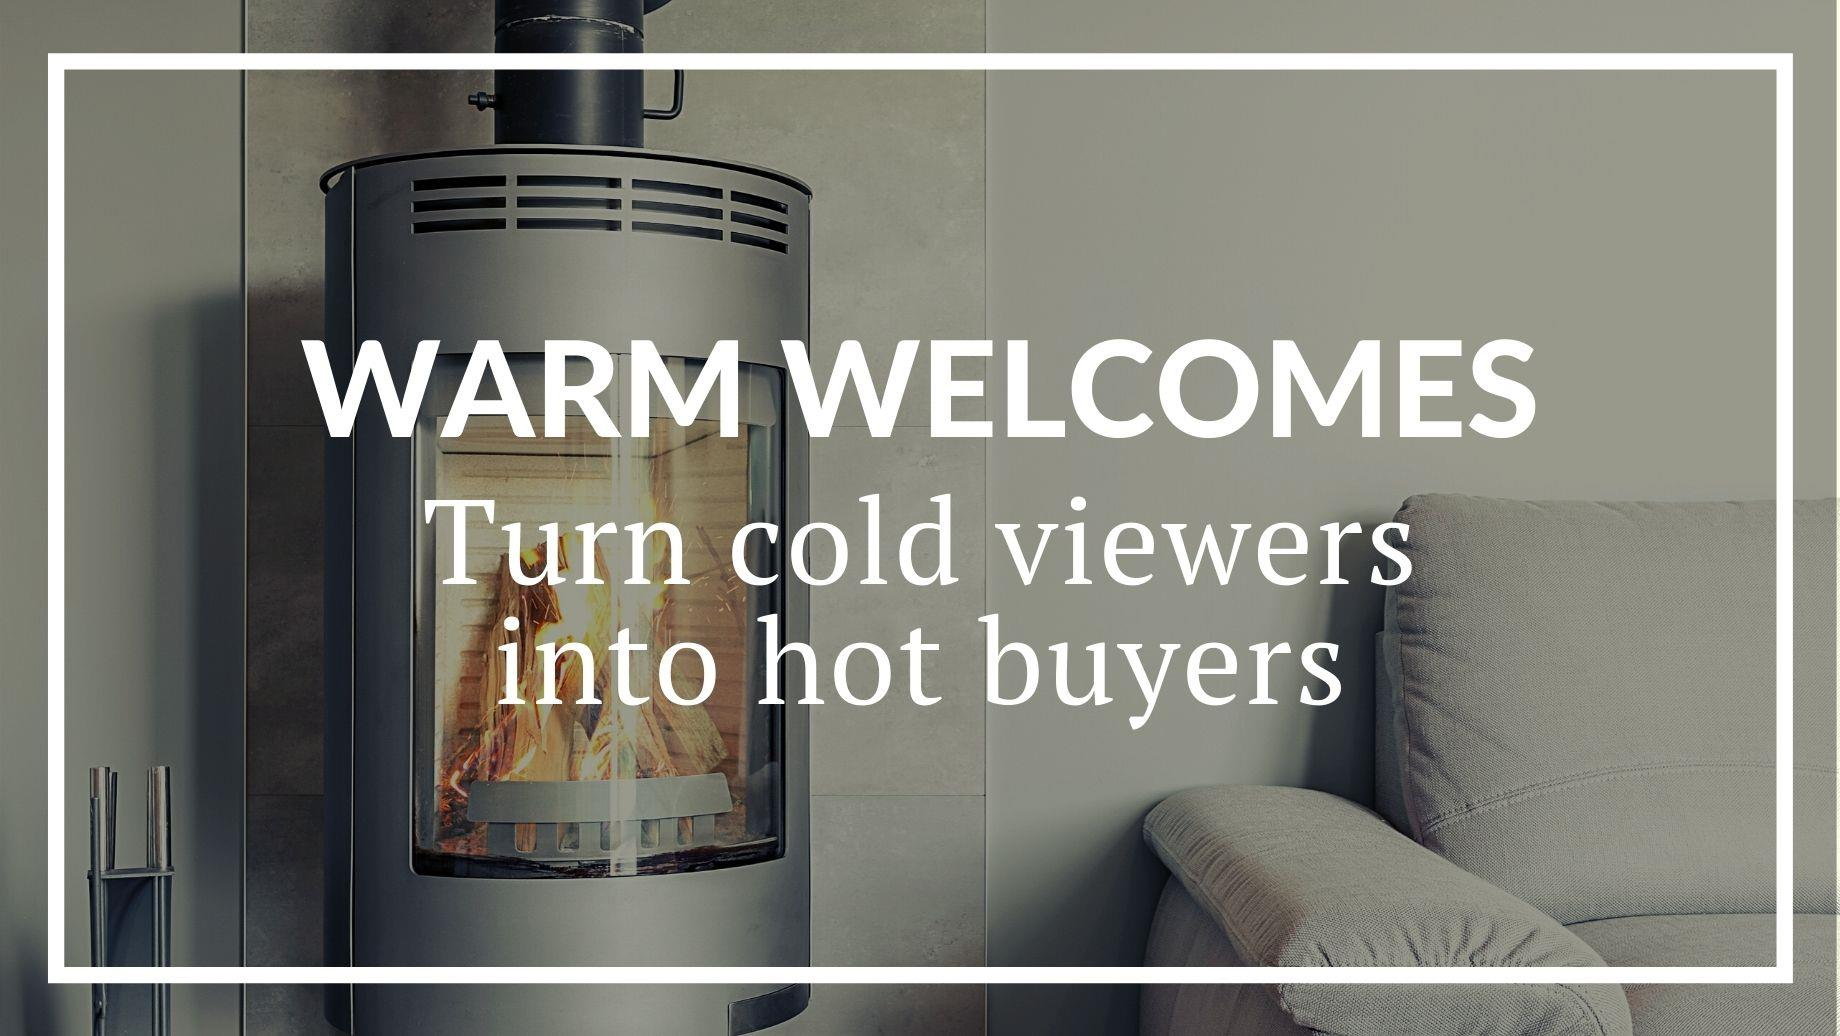 WARM WELCOMES: TURN YOUR COLD VIEWERS INTO HOT BUYERS